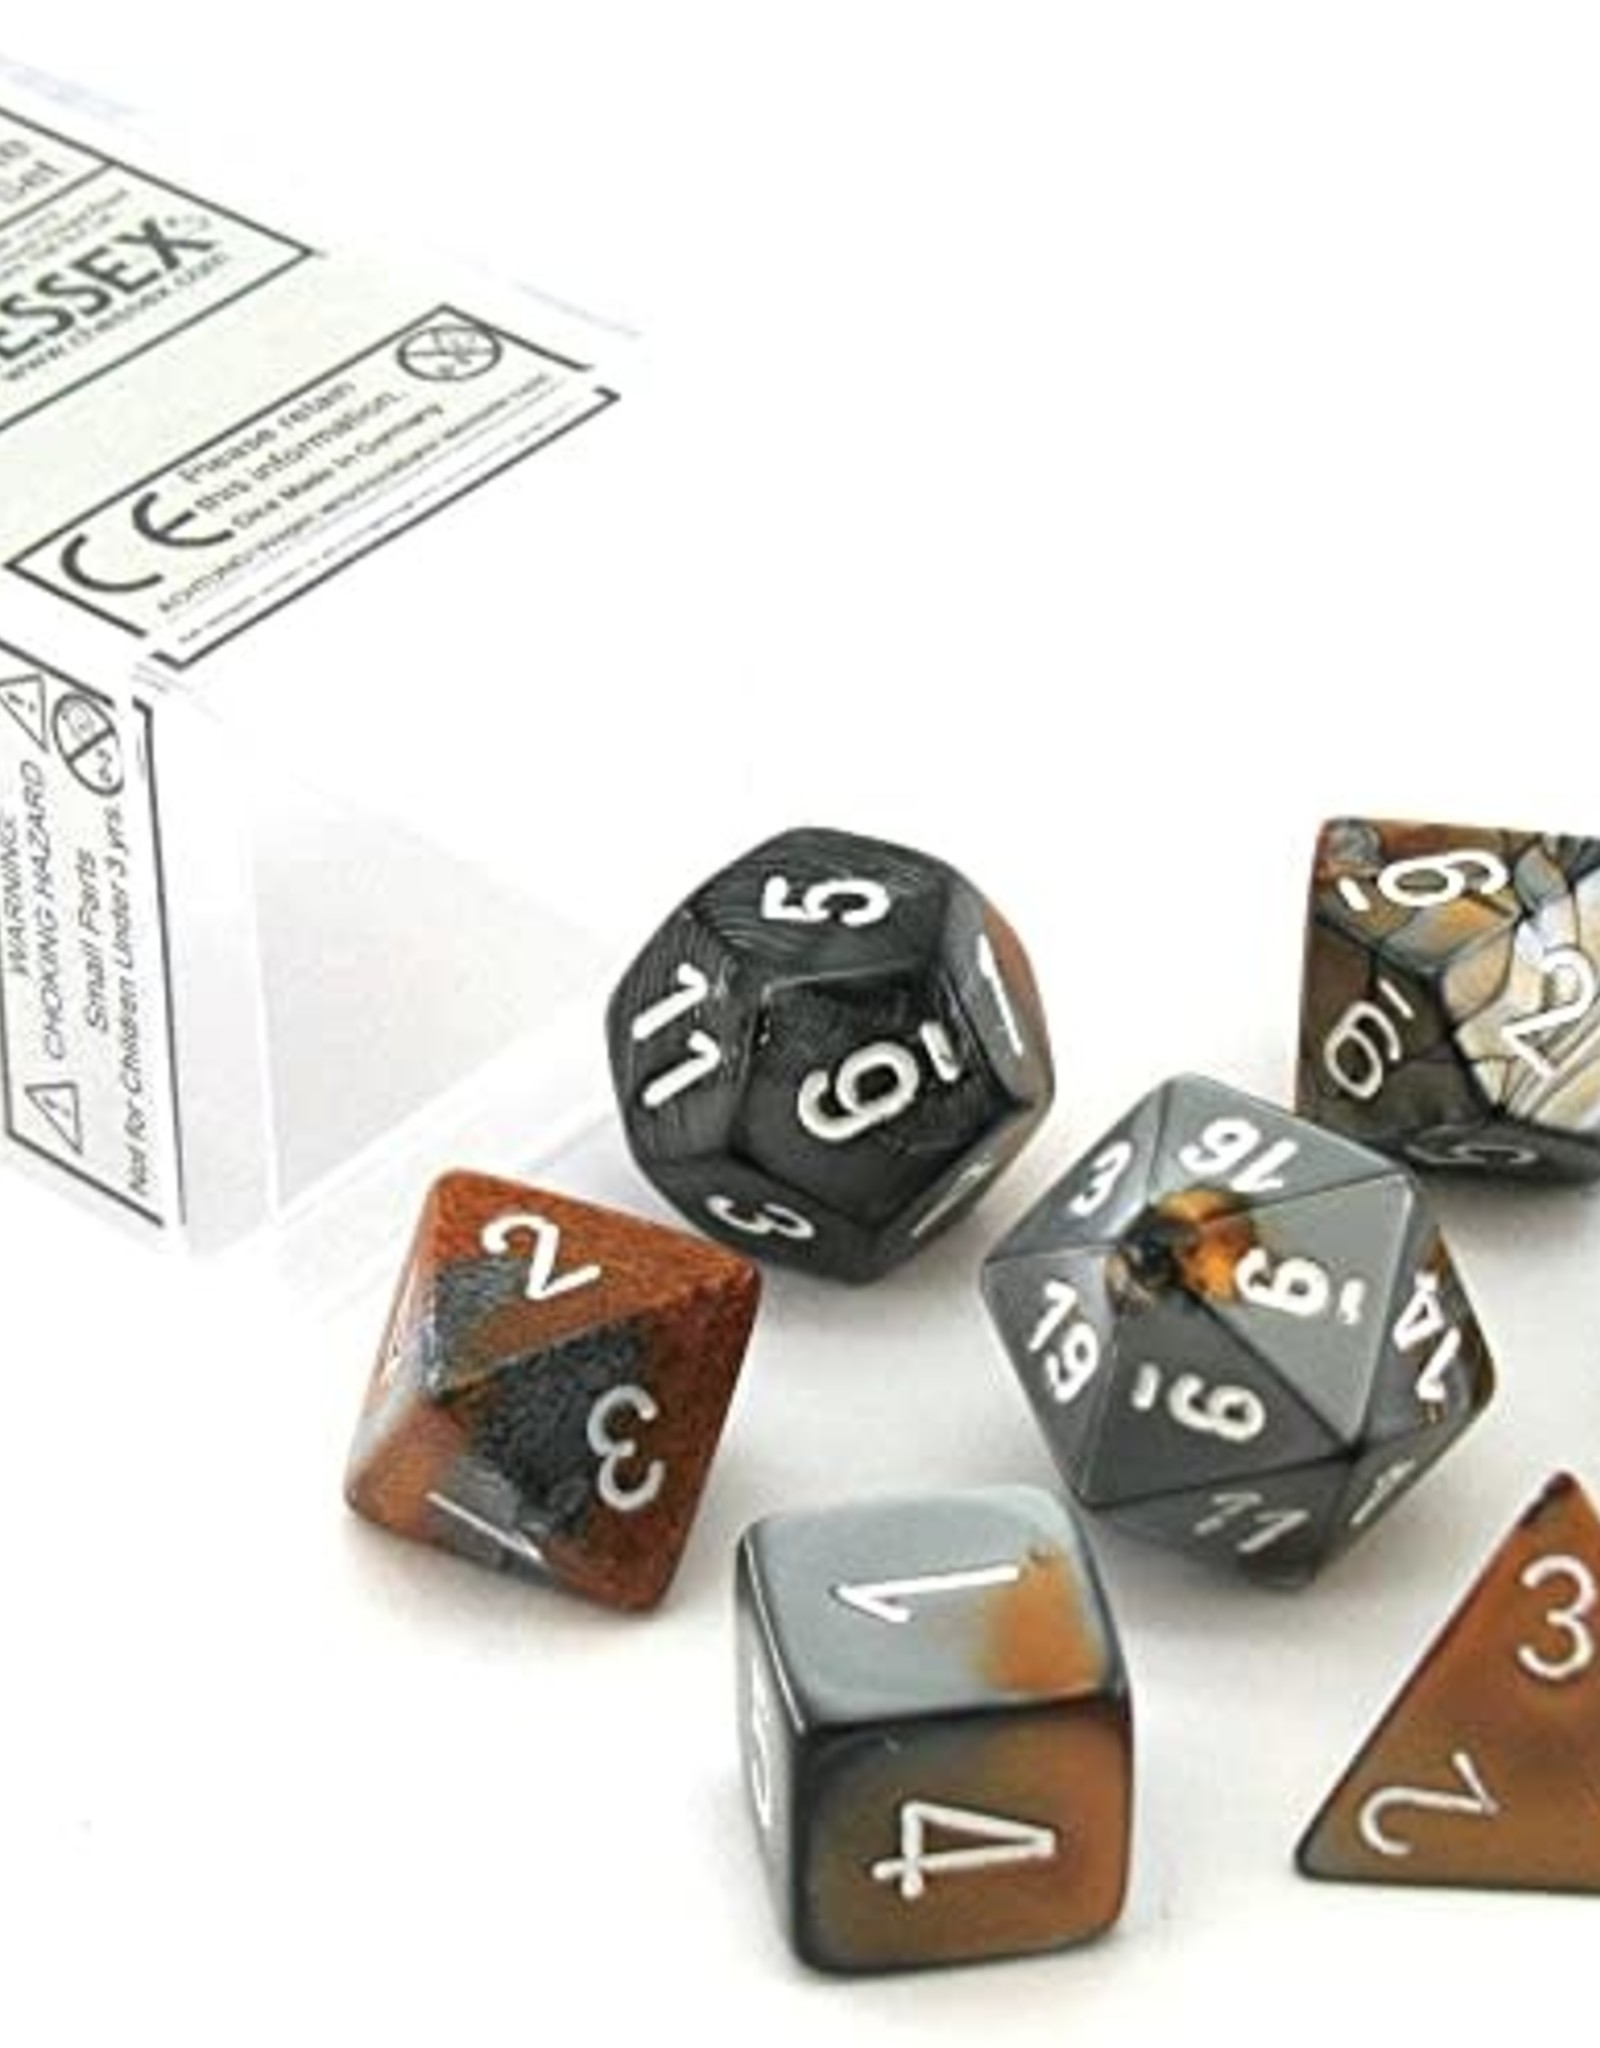 Chessex Chessex Polyhedral 7-Die Gemini Dice Set - Copper-Steel with White CHX-26424